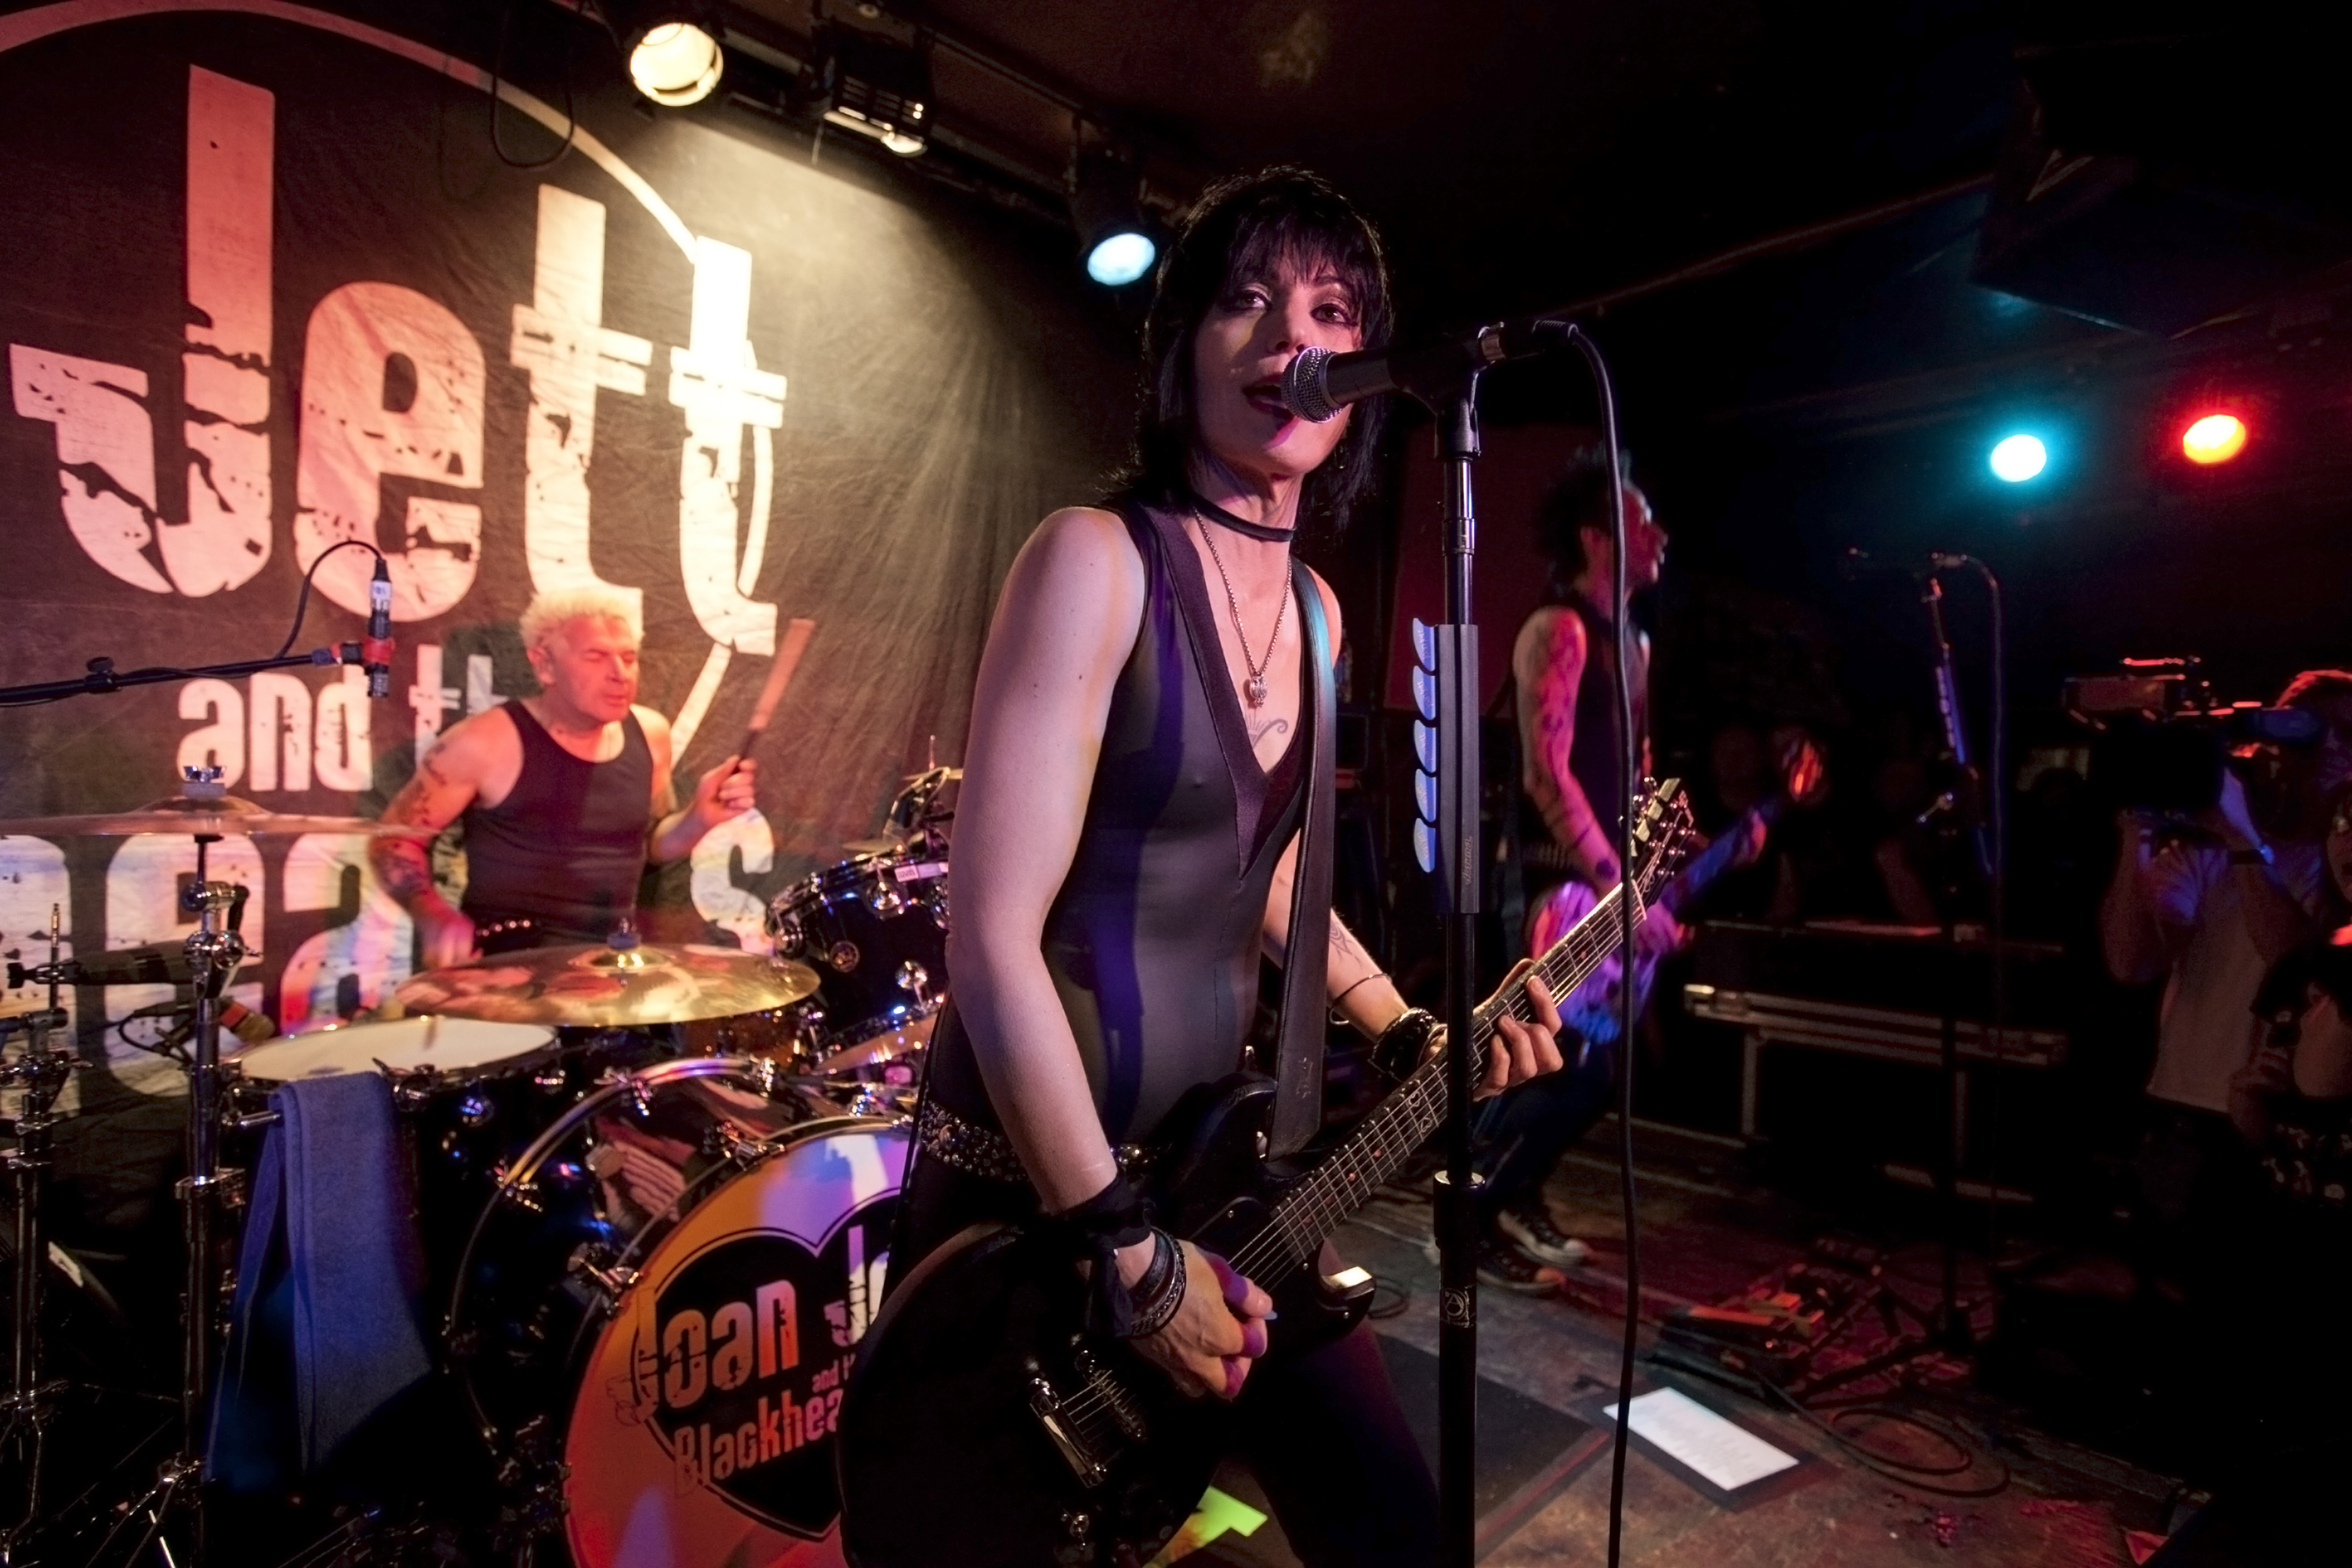 Joan Jett has worked with Vets Rock, which provides services to Veterans